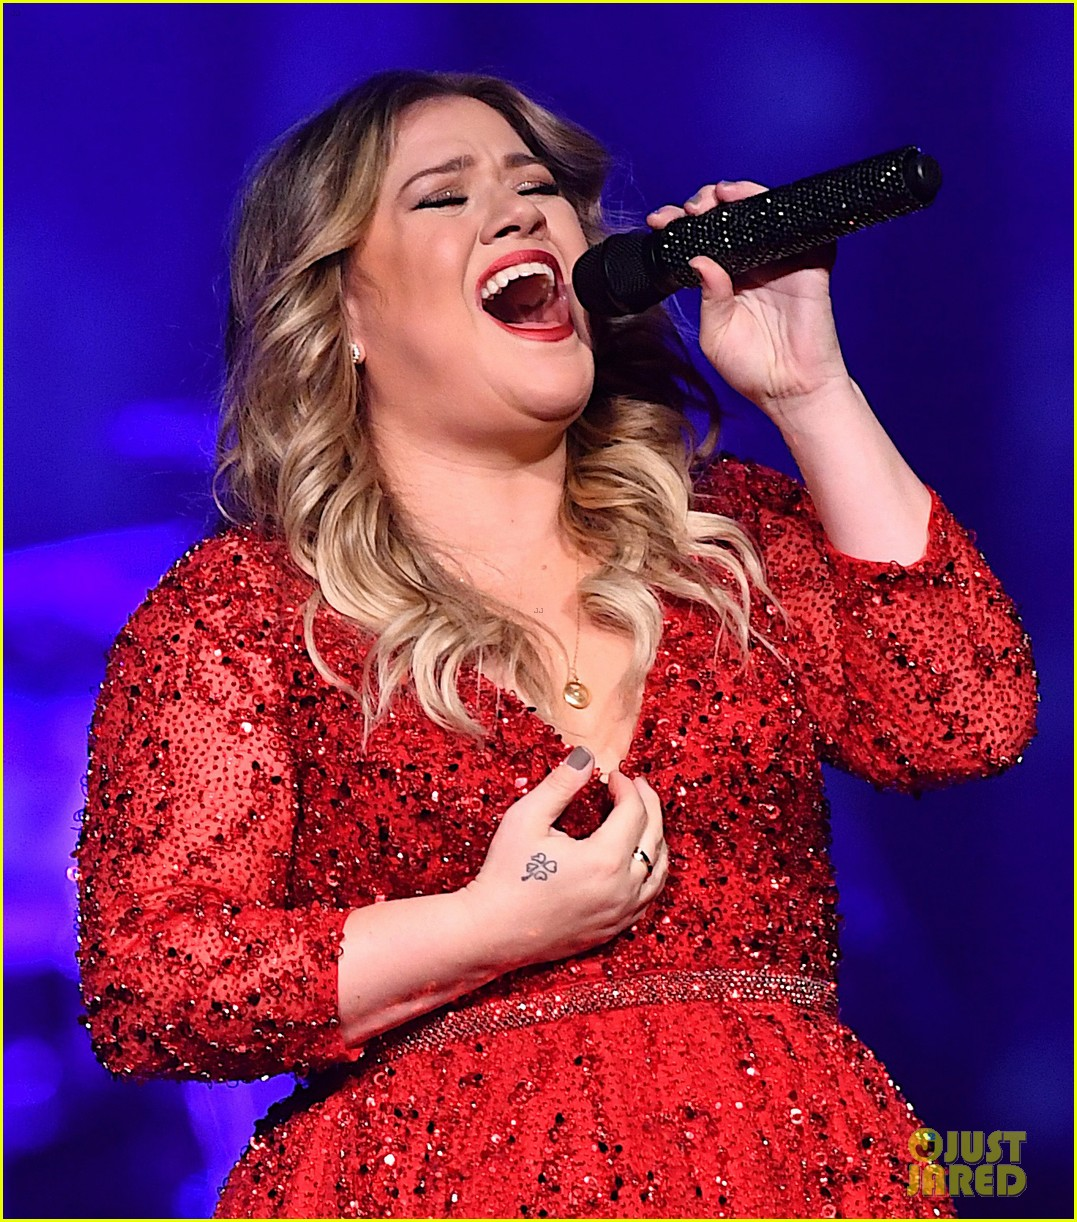 Kelly Clarkson Performs Her Annual Christmas Concert in Nashville ...